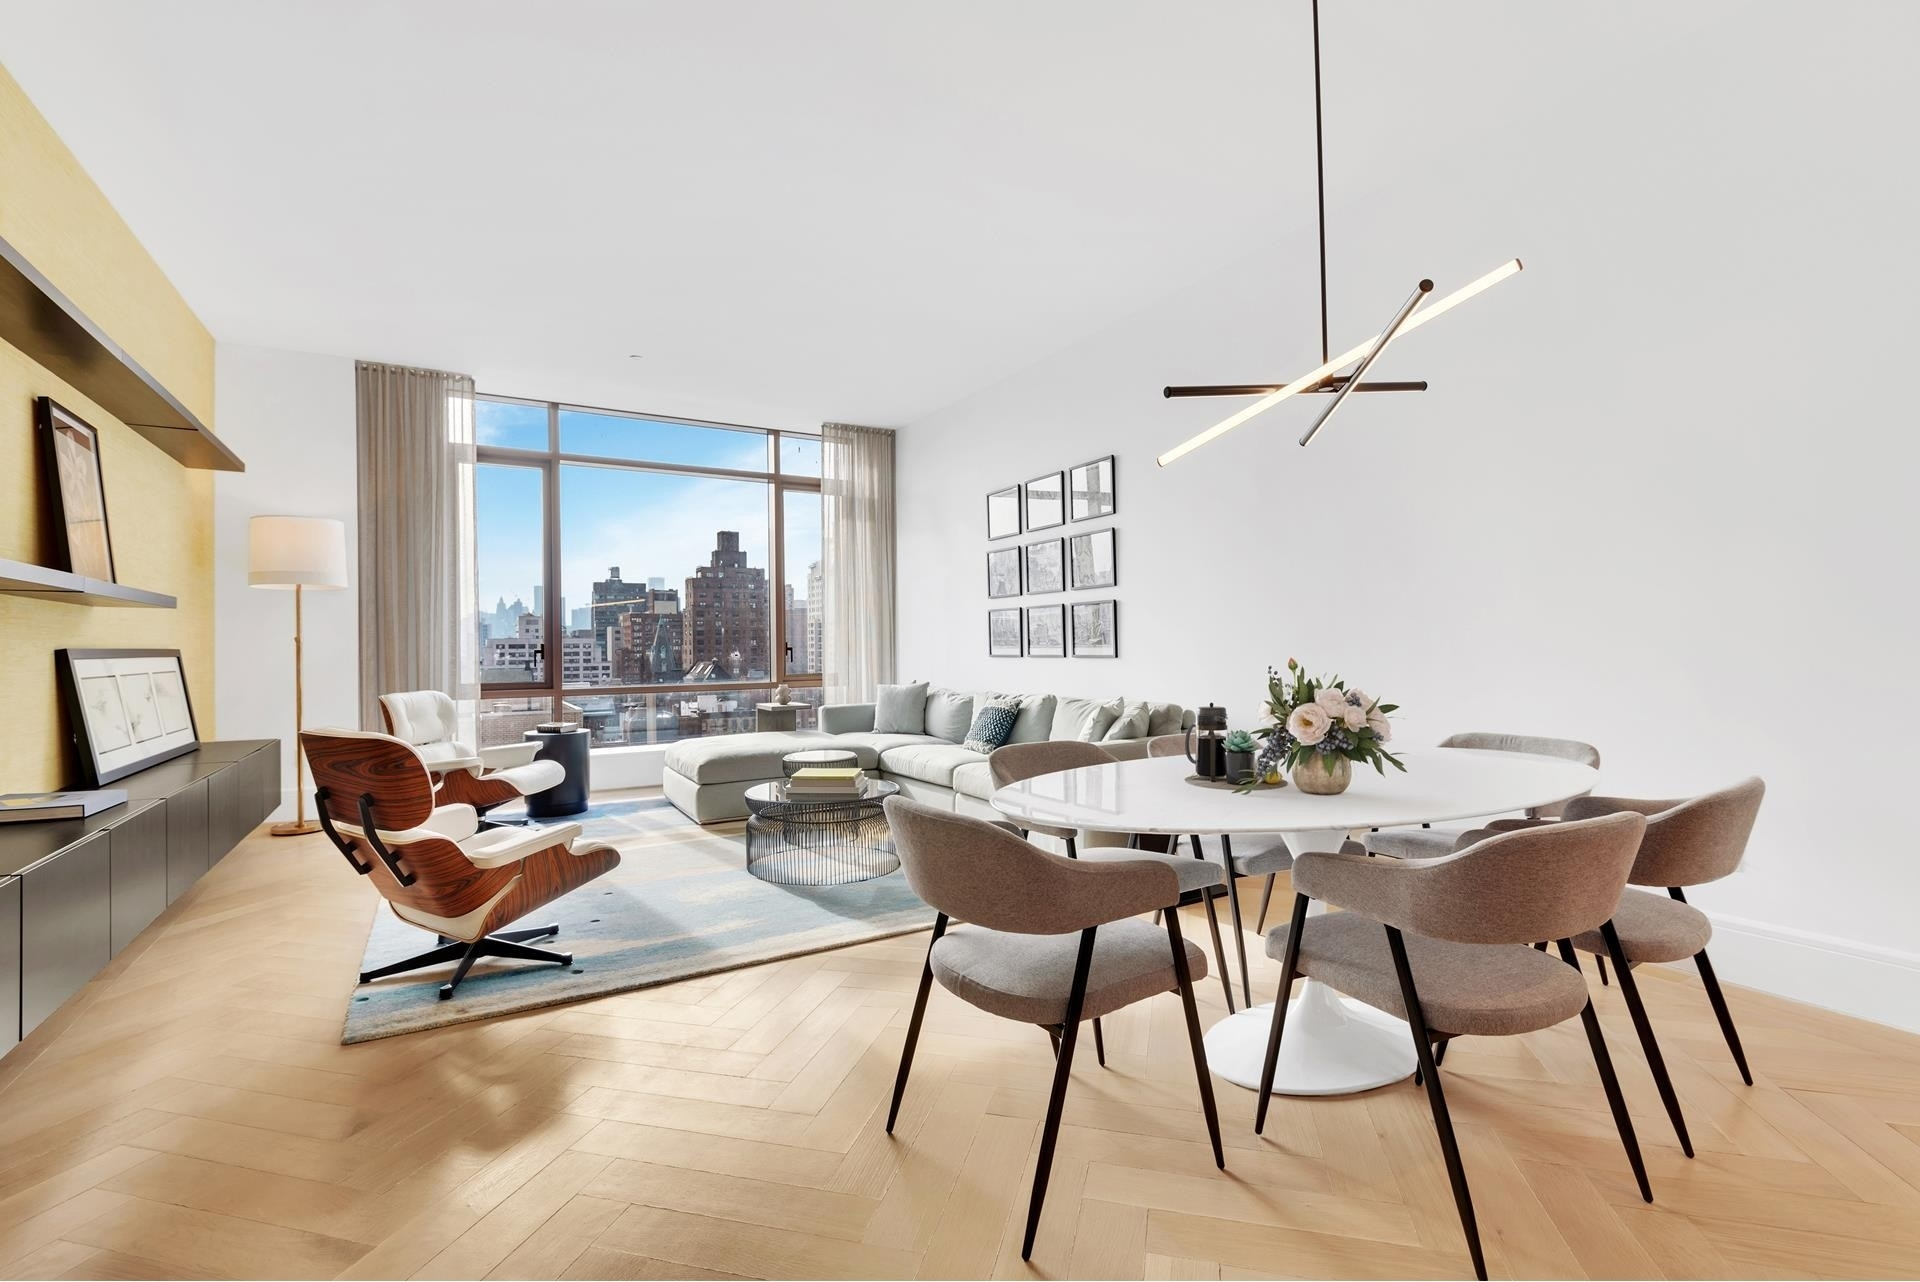 Condominium for Sale at Gramercy Square, 215 East 19th St, 7G Gramercy Park, New York, NY 10003